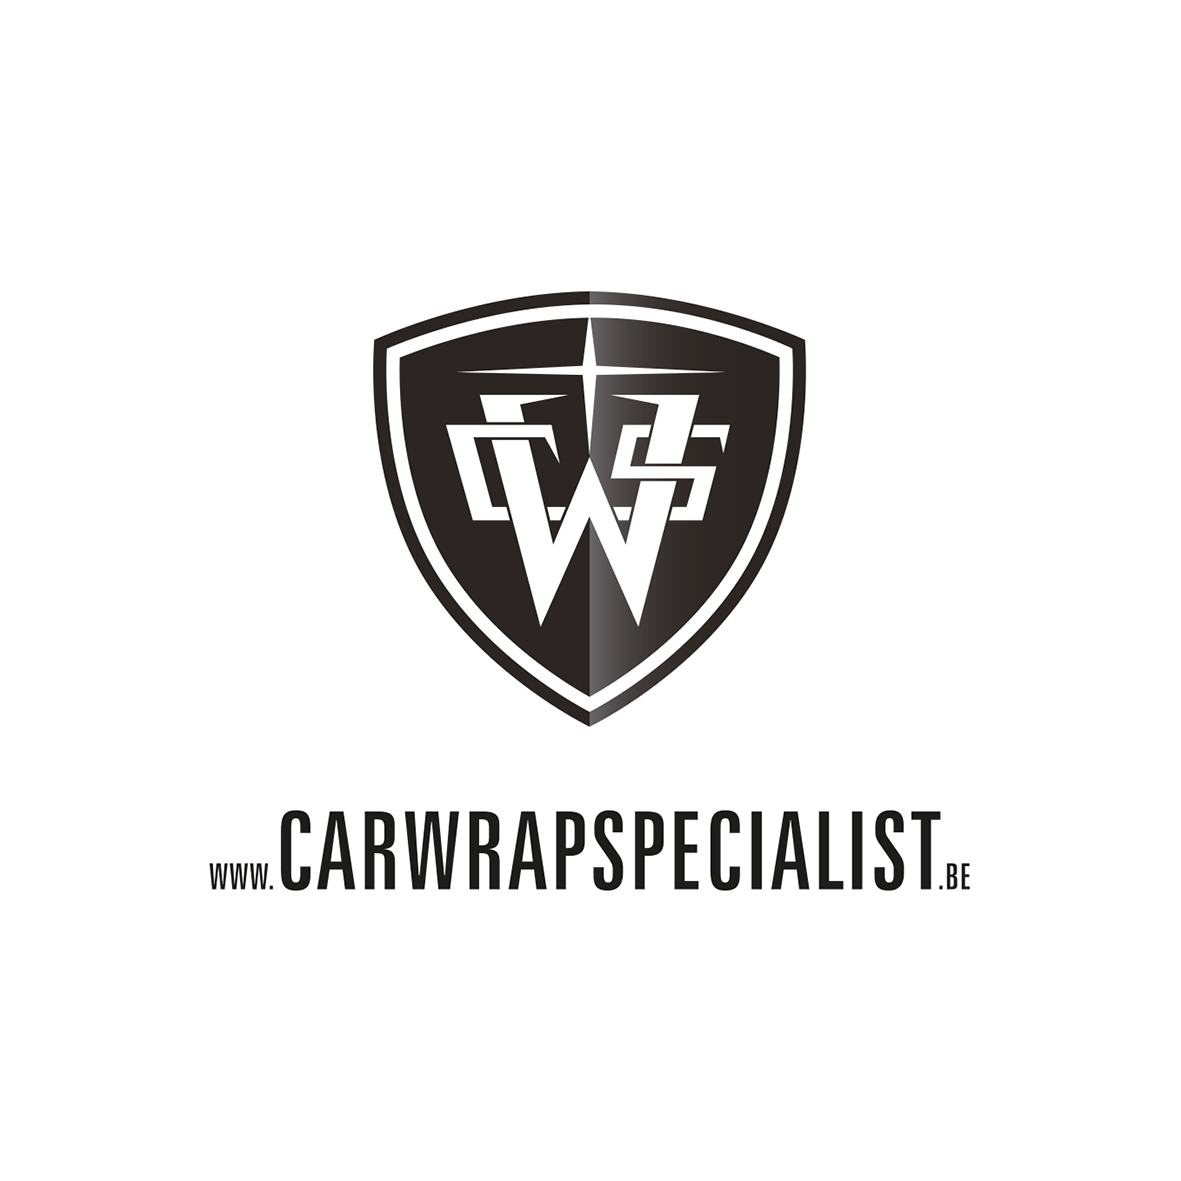 Carwrapspecialist